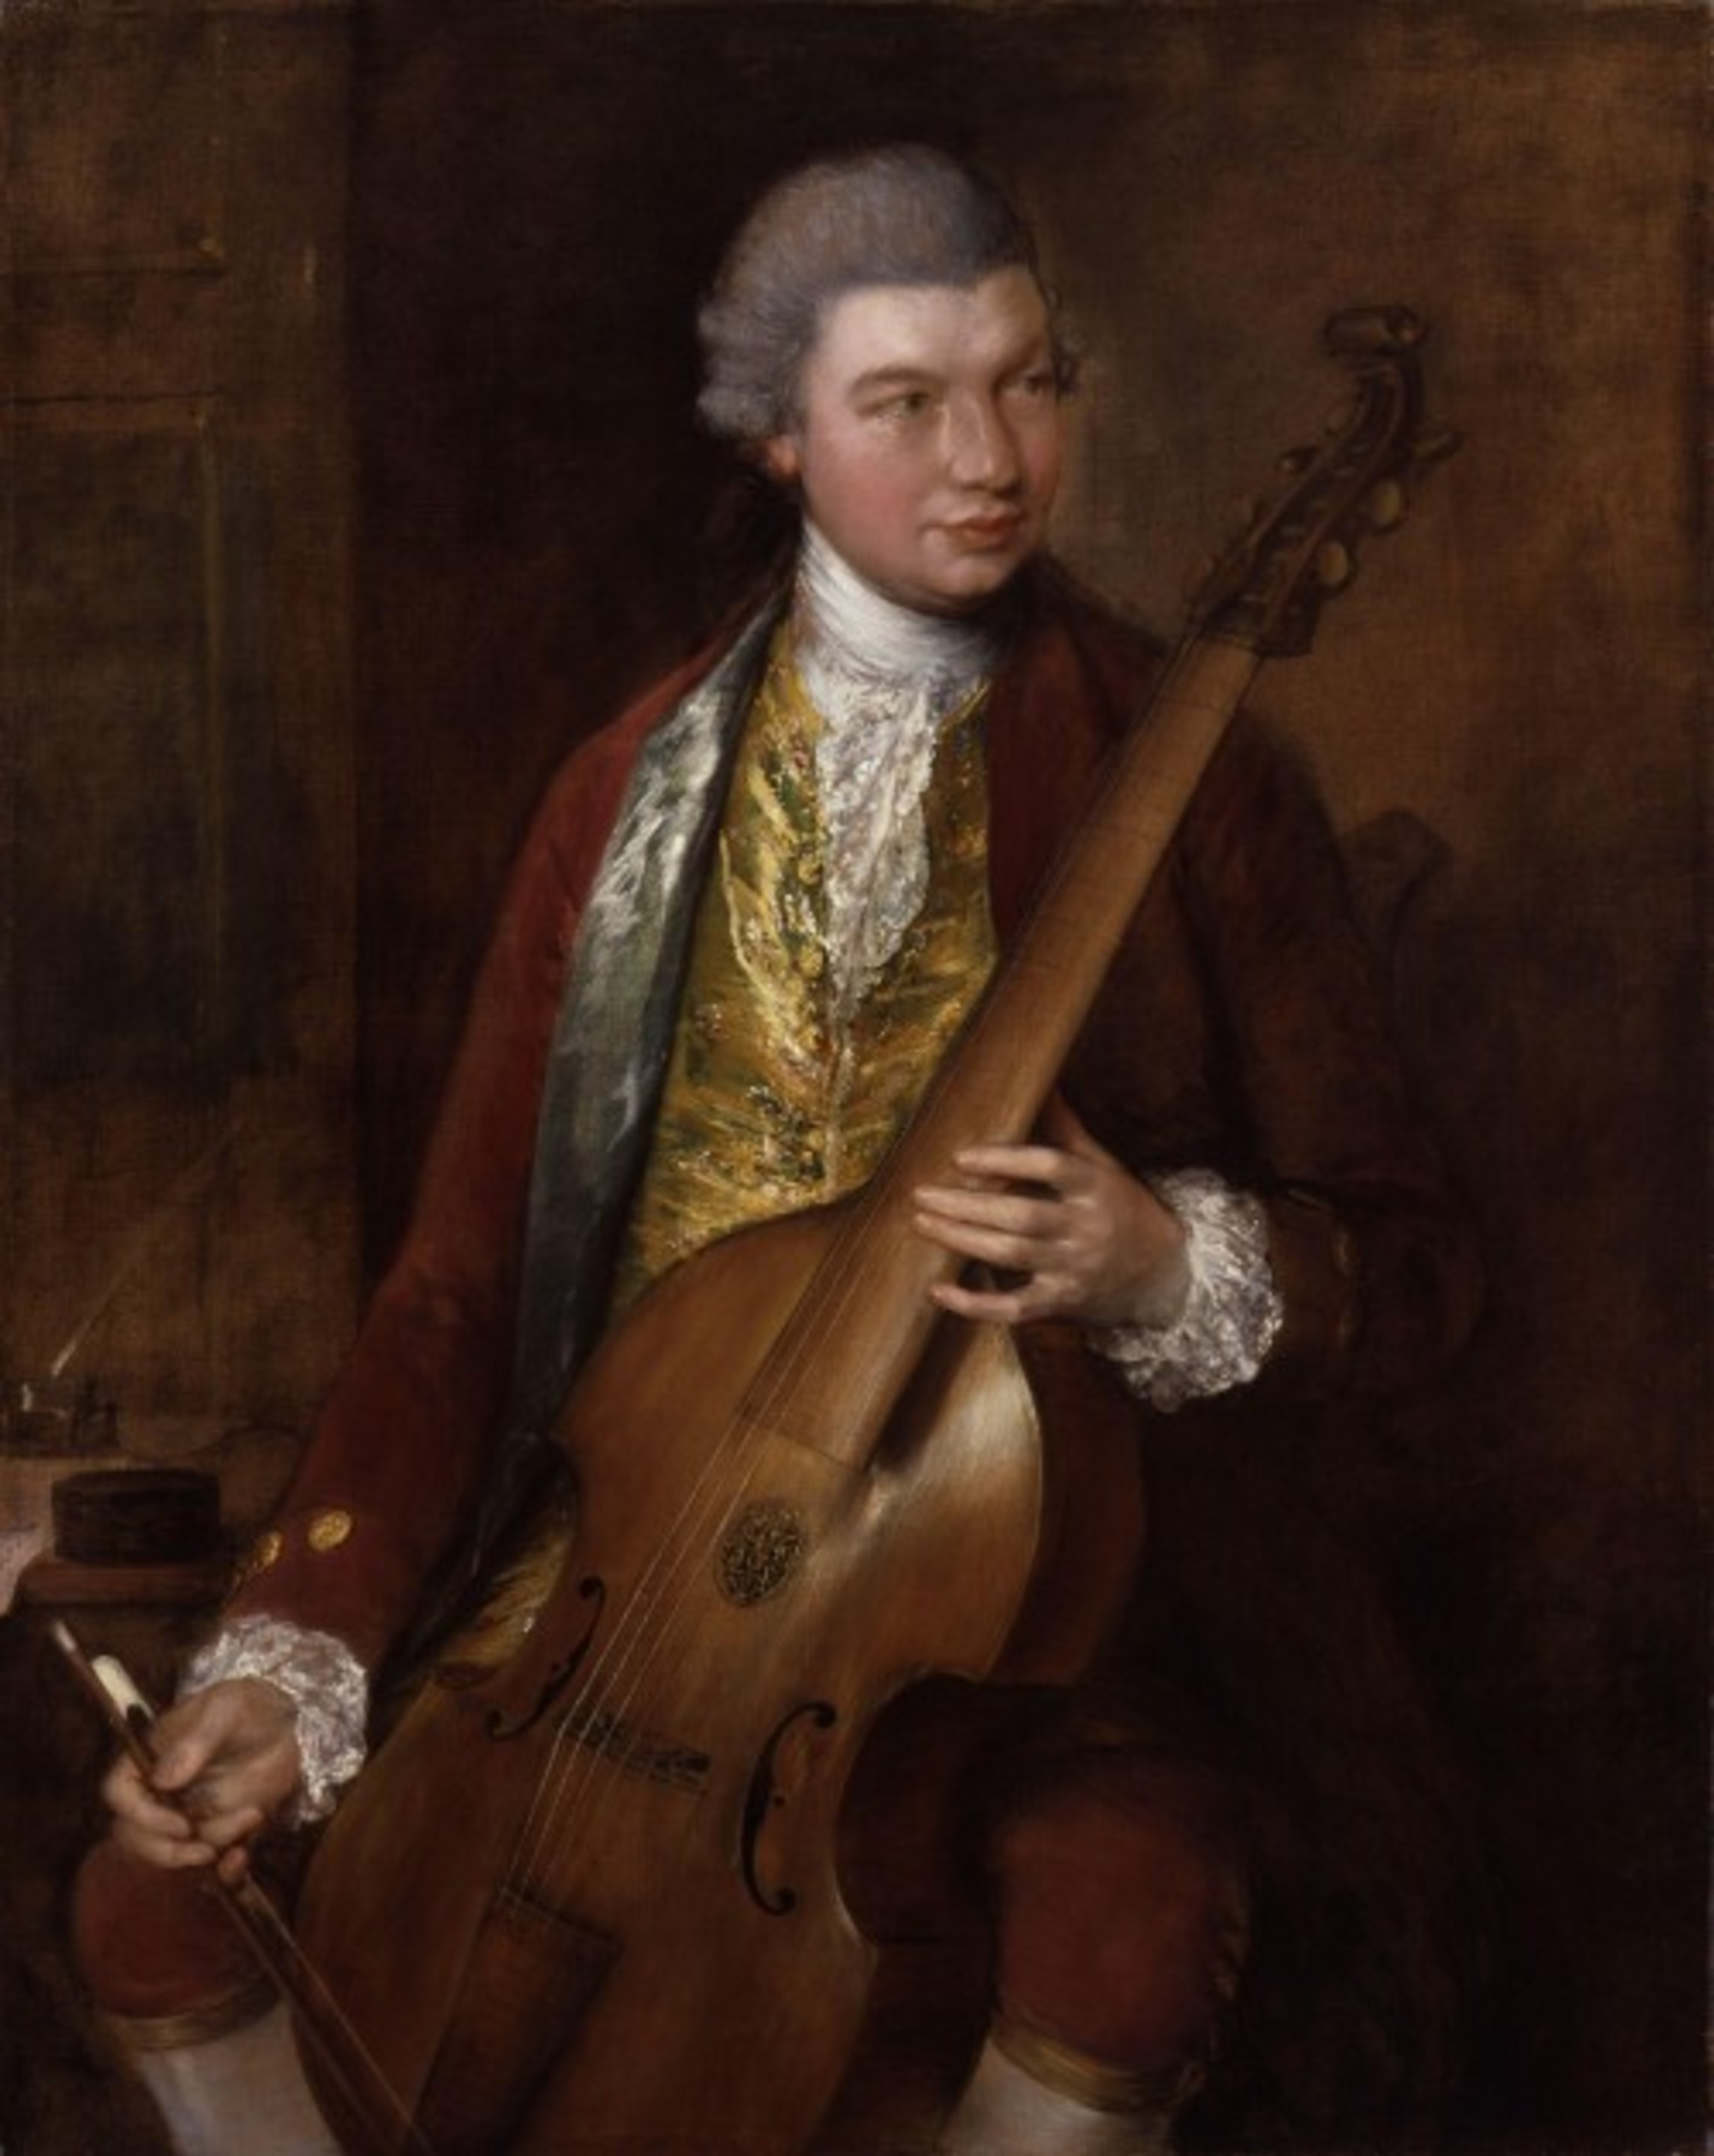 Karl Friedrich Abel by Thomas Gainsborough